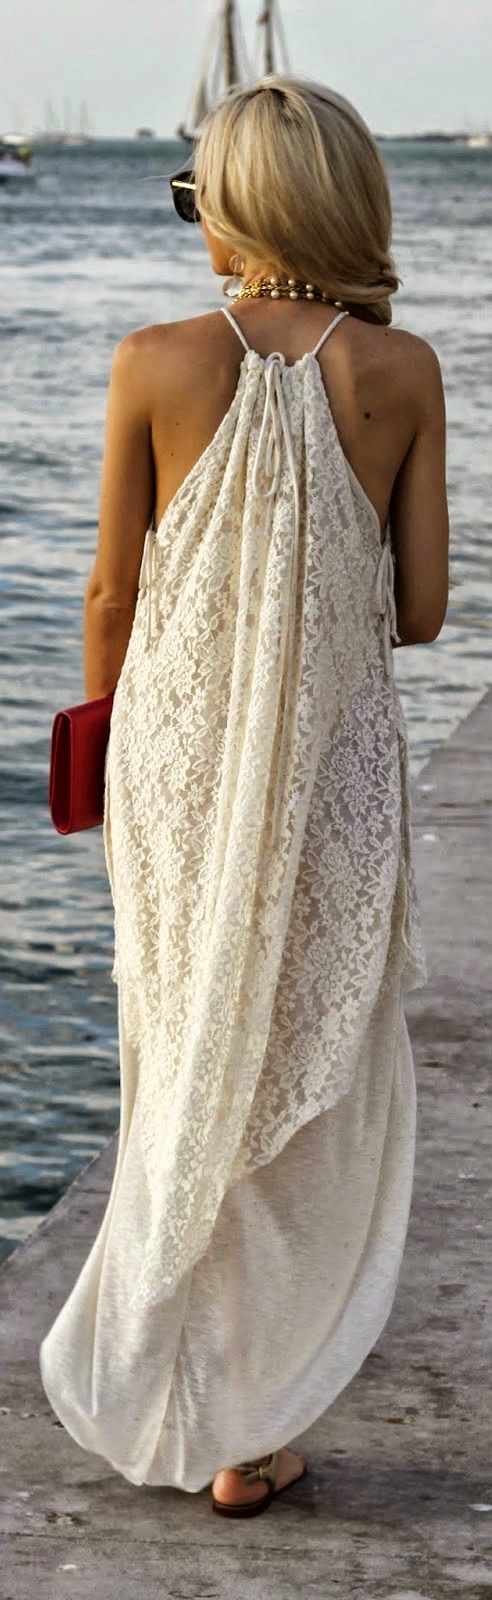 White Lace Sleeveless Maxi Dress | Spring / Summer Outfits